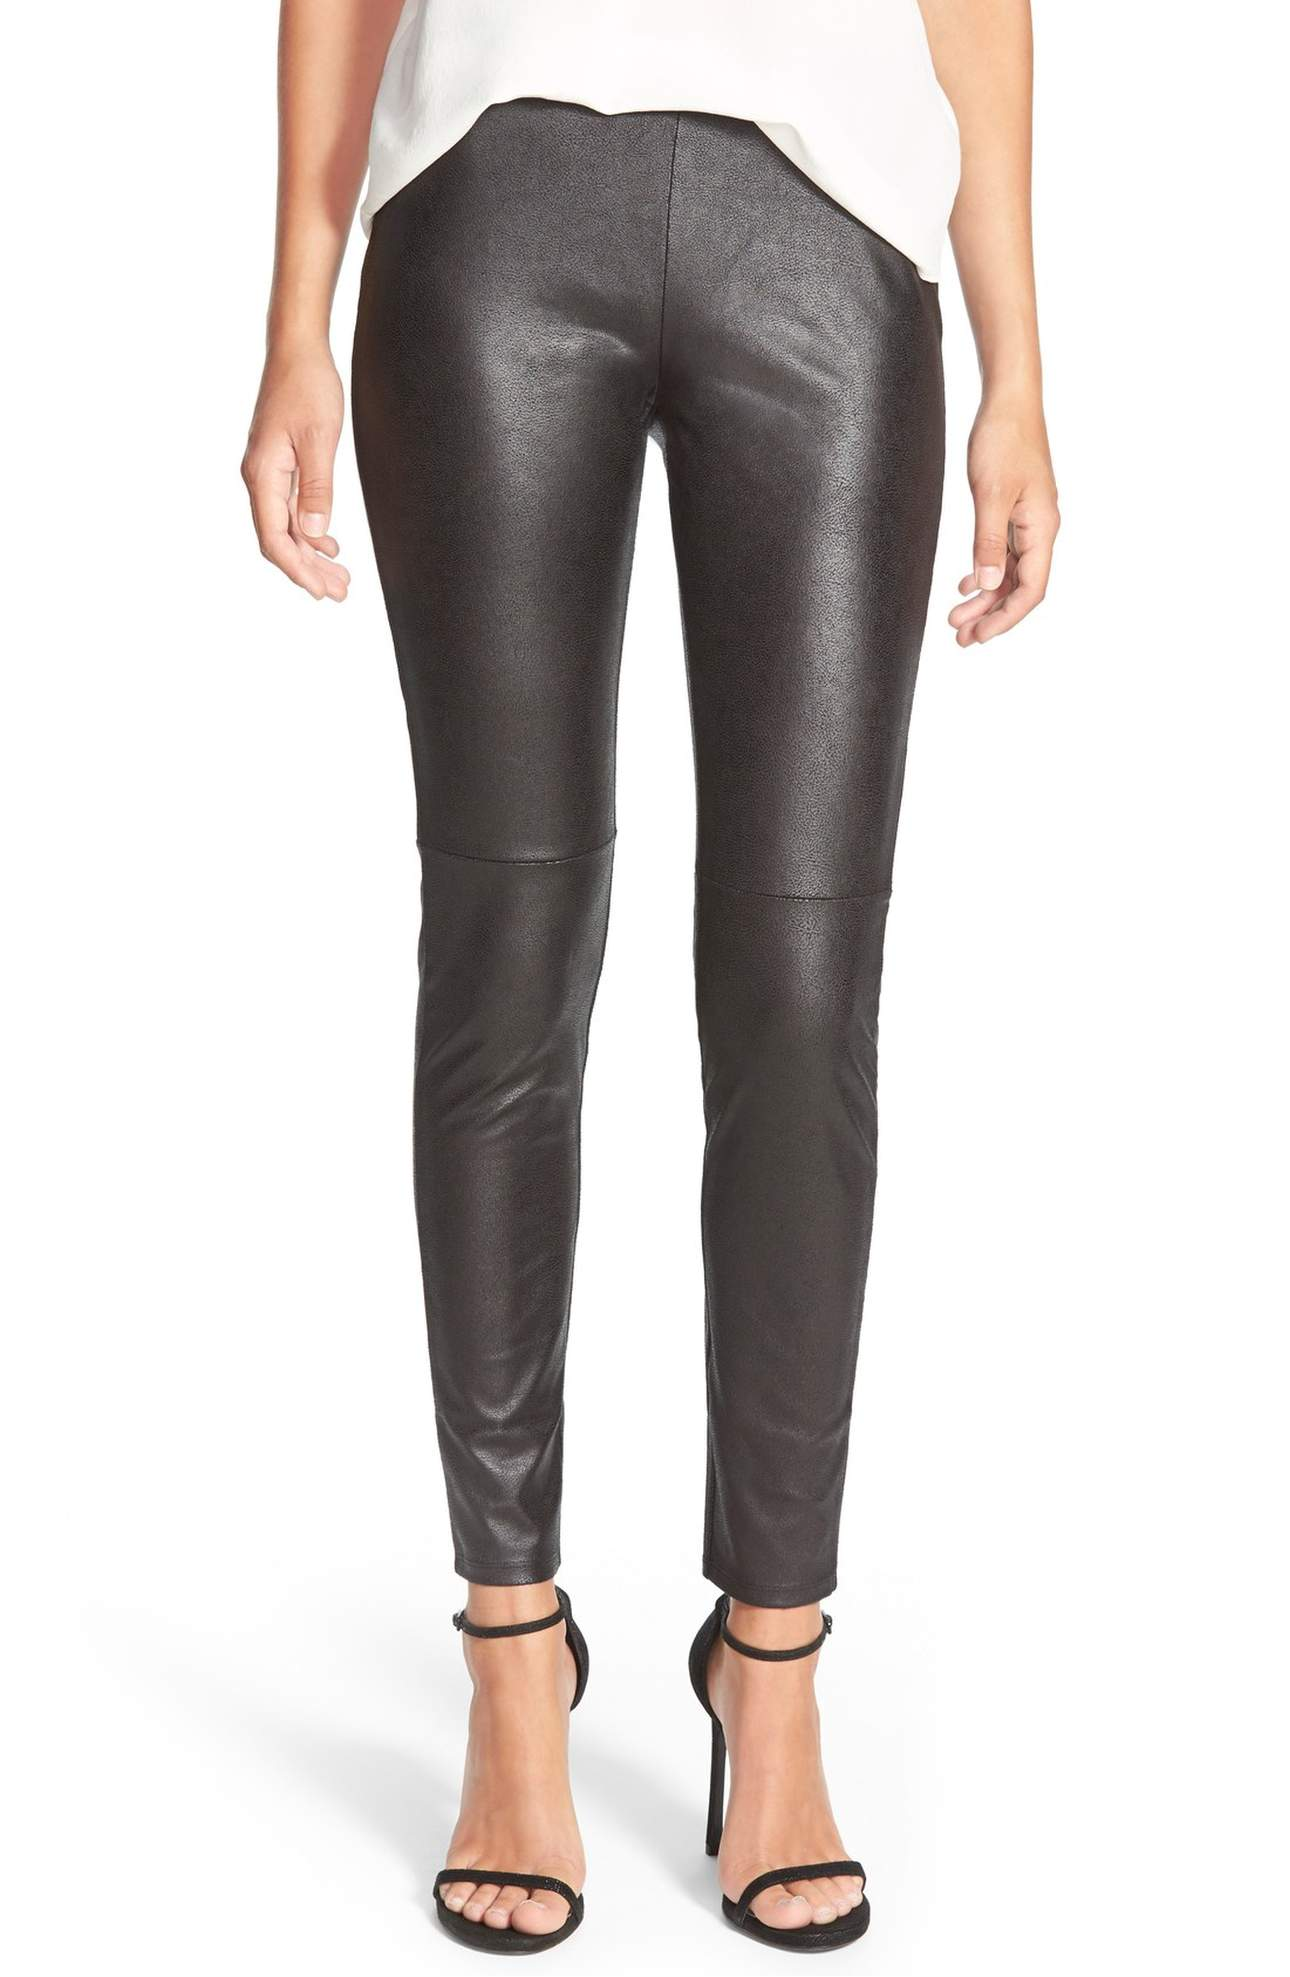 <p>Faux Leather Leggings - $79. Add instant polish to your look with the streamlined silhouette of lightly textured faux-leather leggings detailed with moto-inspired articulated knees. Ladies, you can literally wear these bad boys with ANY top. (Image: Nordstrom){&amp;nbsp;}</p><p><br></p><p></p>